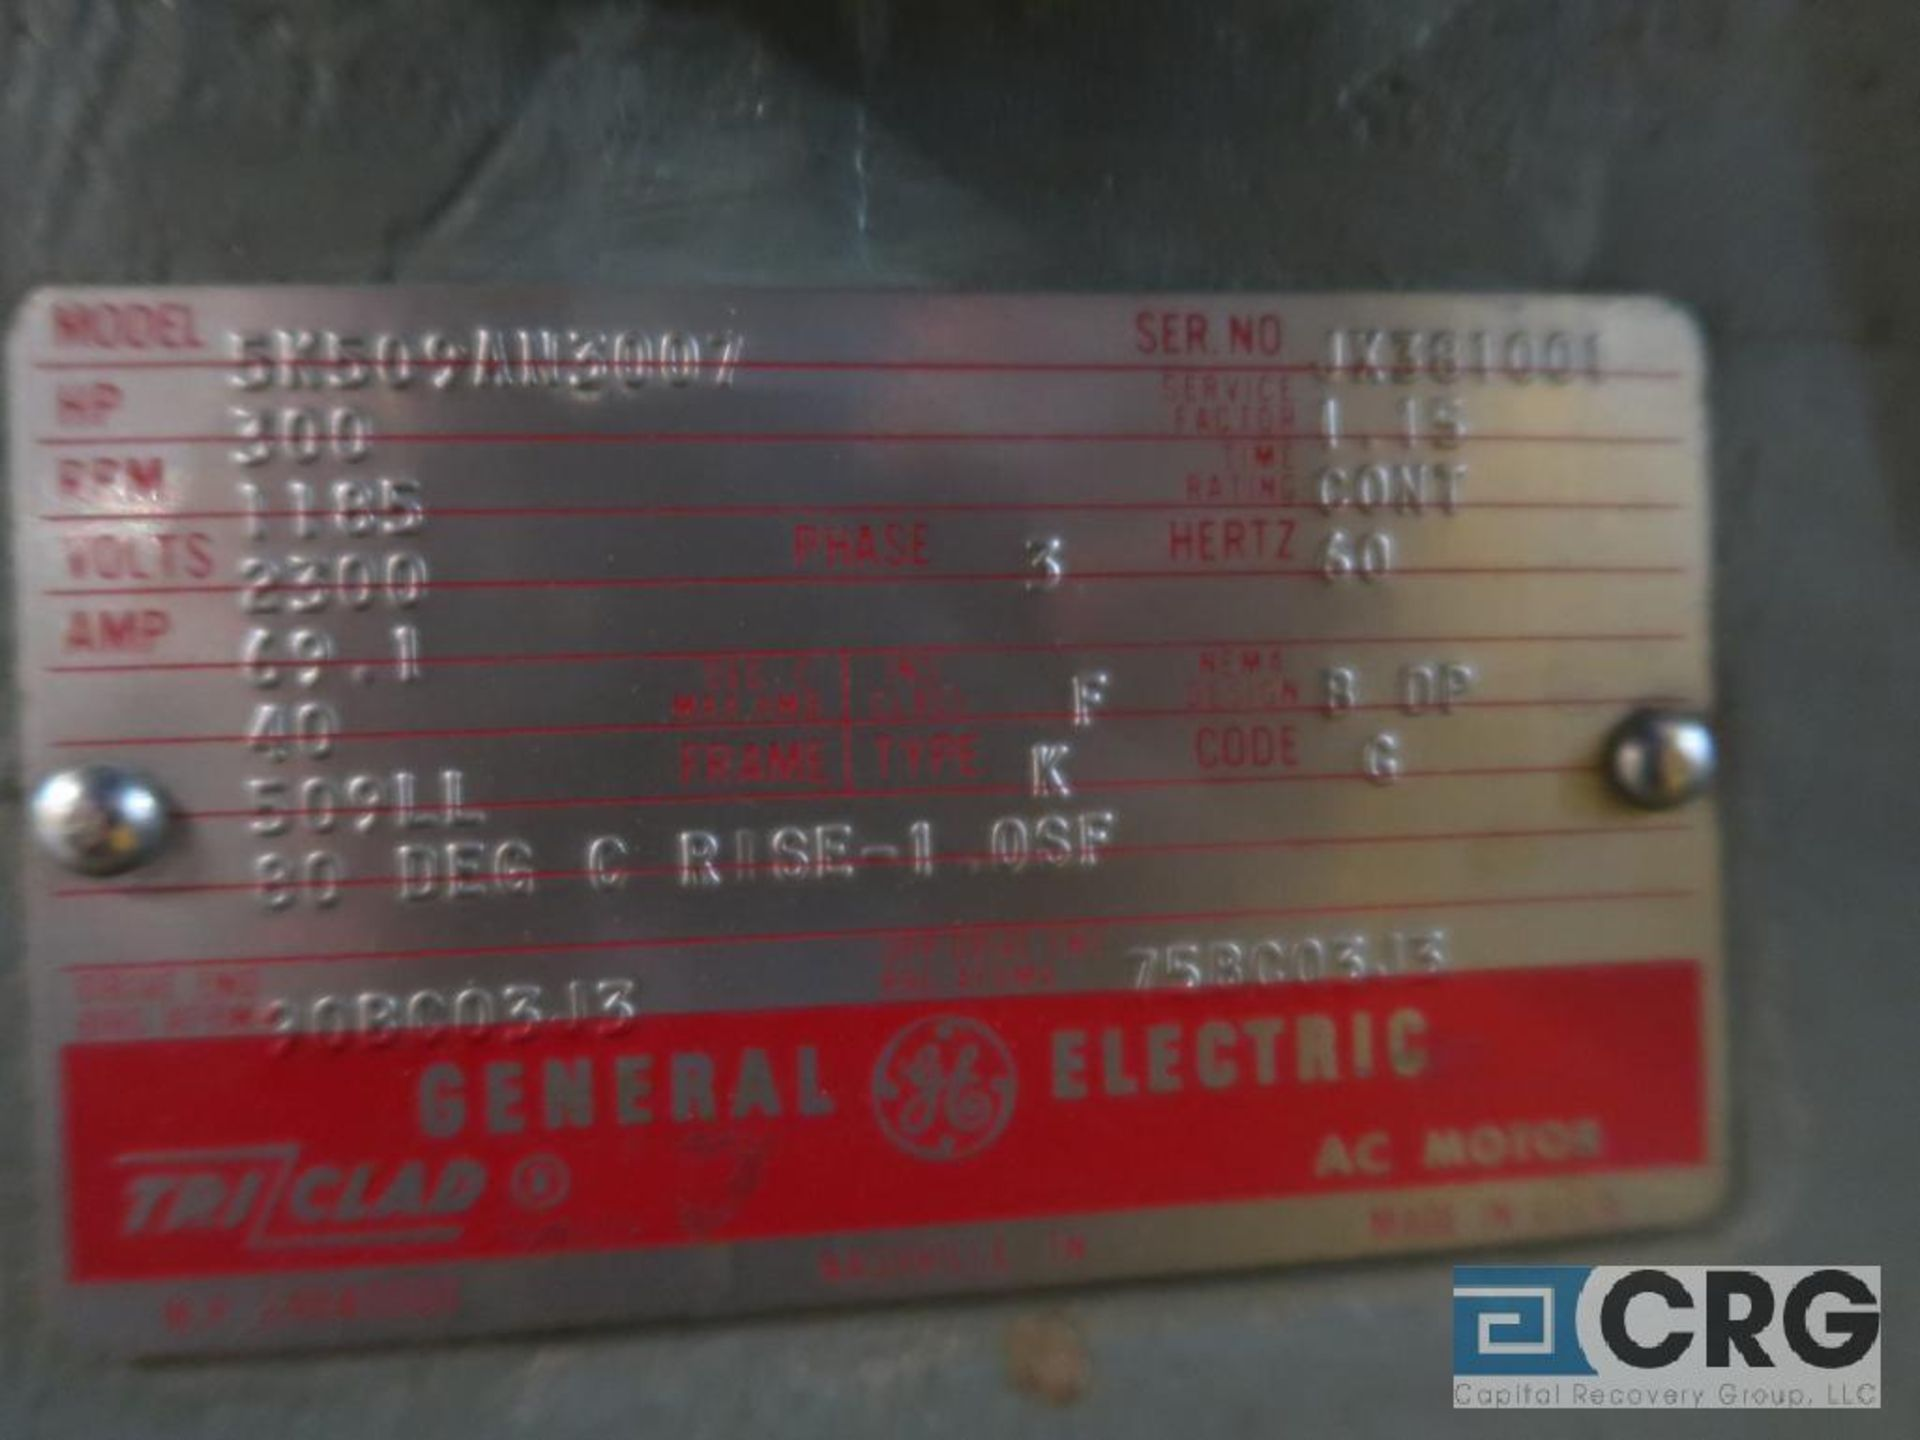 General Electric A-C motor, 300 HP, 1,185 RPMs, 2,300 volt, 3 ph., 509LL frame (Finish Building) - Image 2 of 2